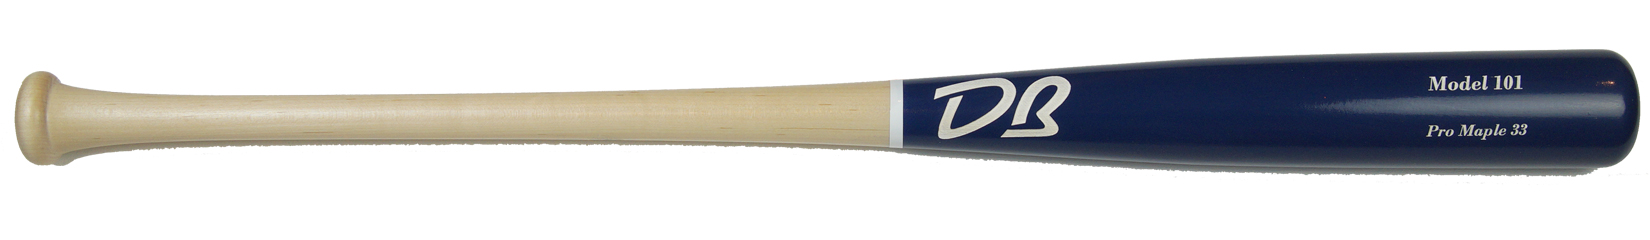 Model 101 Bat Picture on Homepage